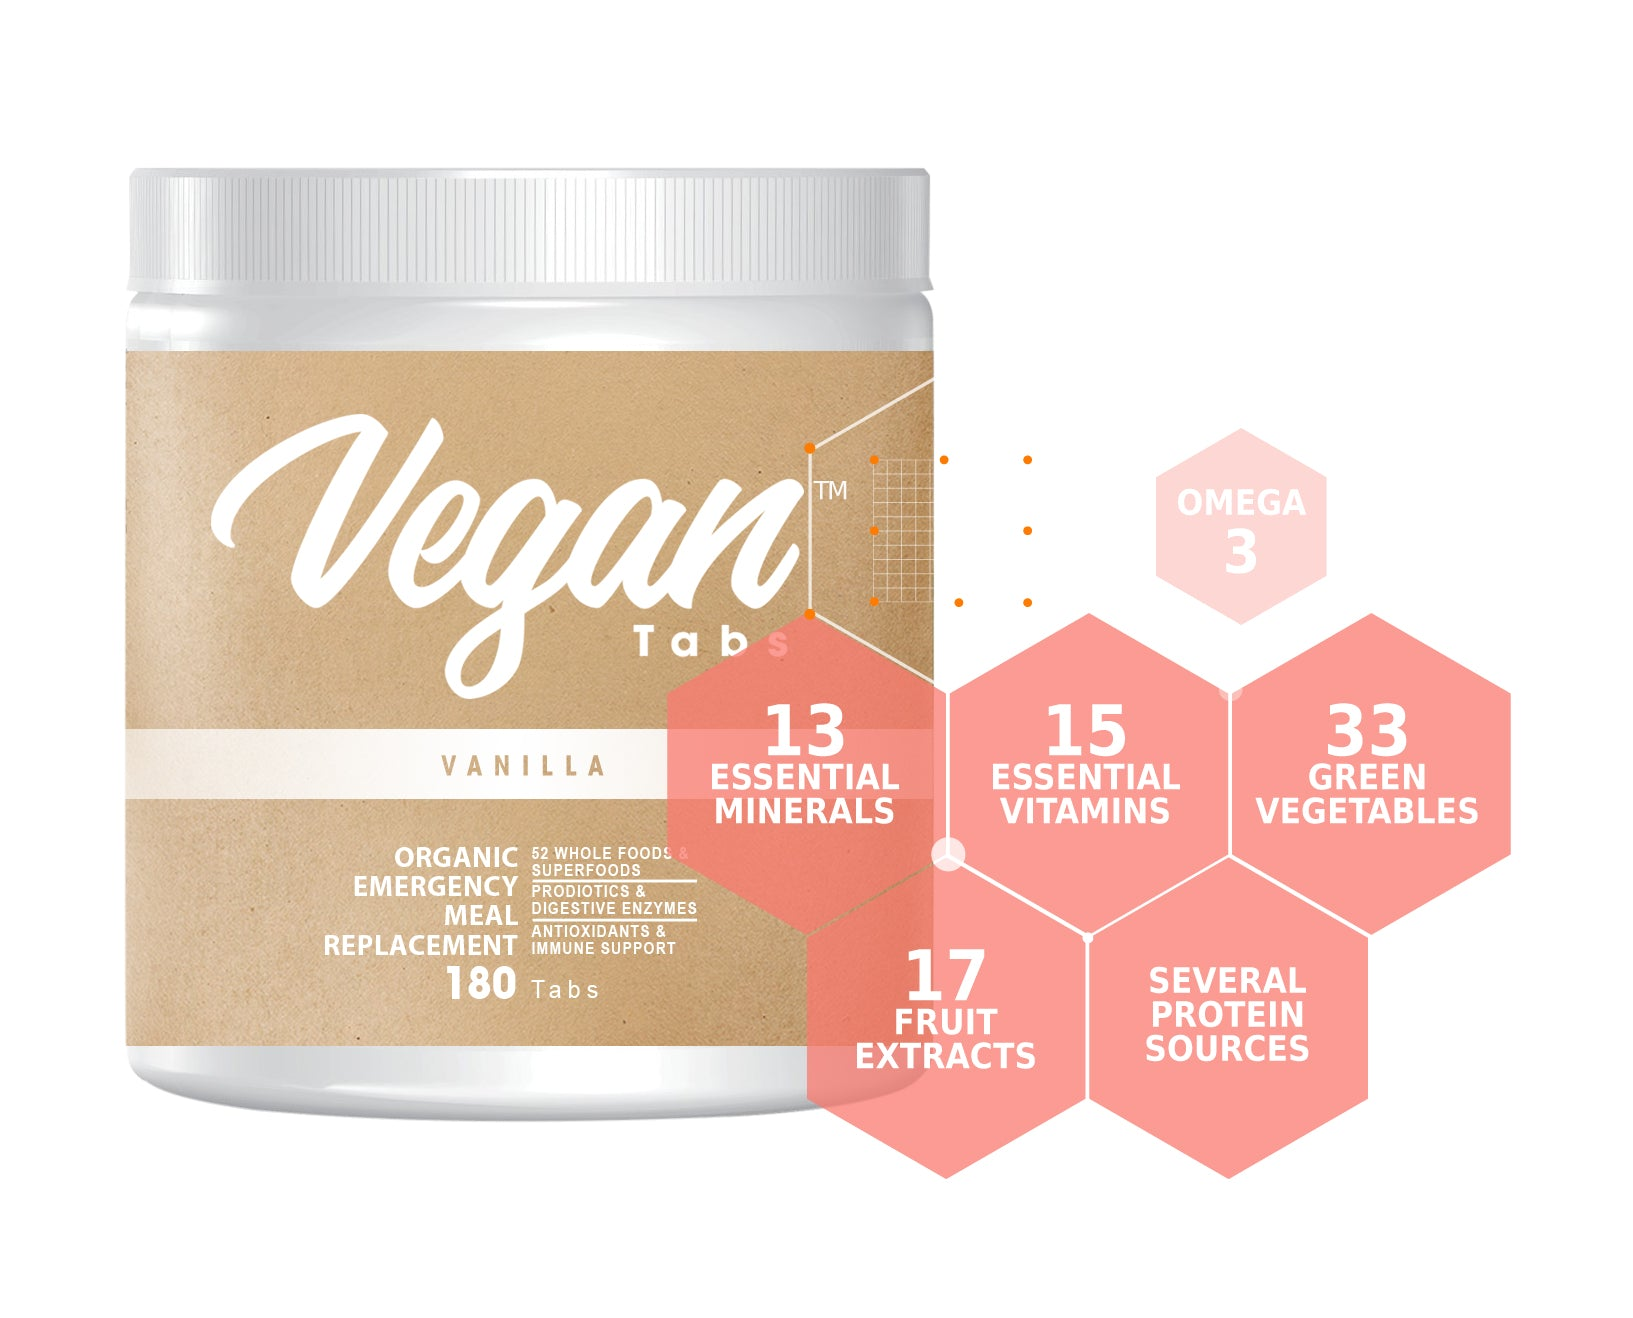 The ultimate Vegan supplement - Vegan Tabs